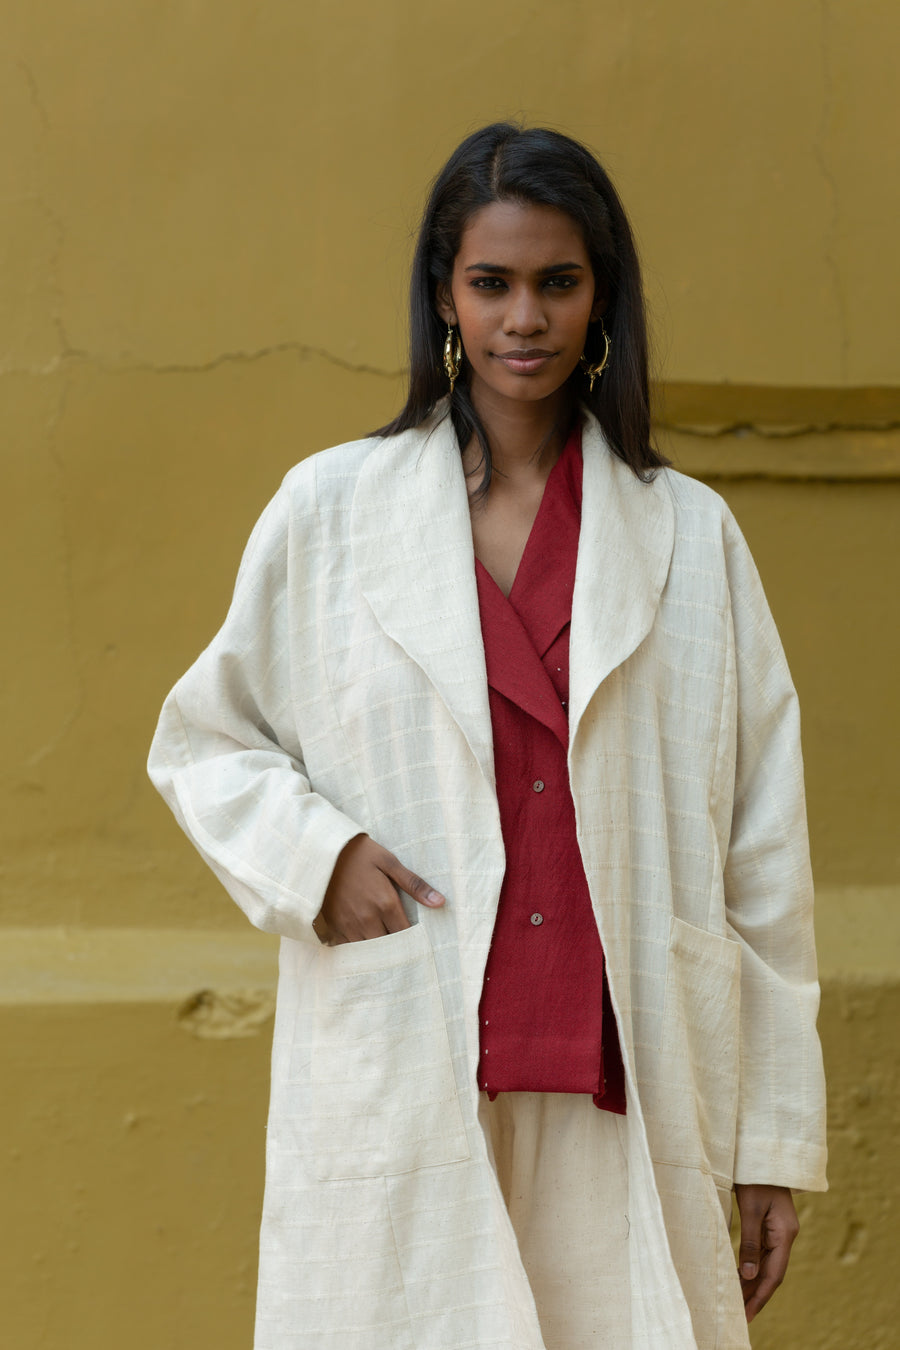 Off-white shawl collar jacket in Organic Cotton - Ethical made fashion - onlyethikal